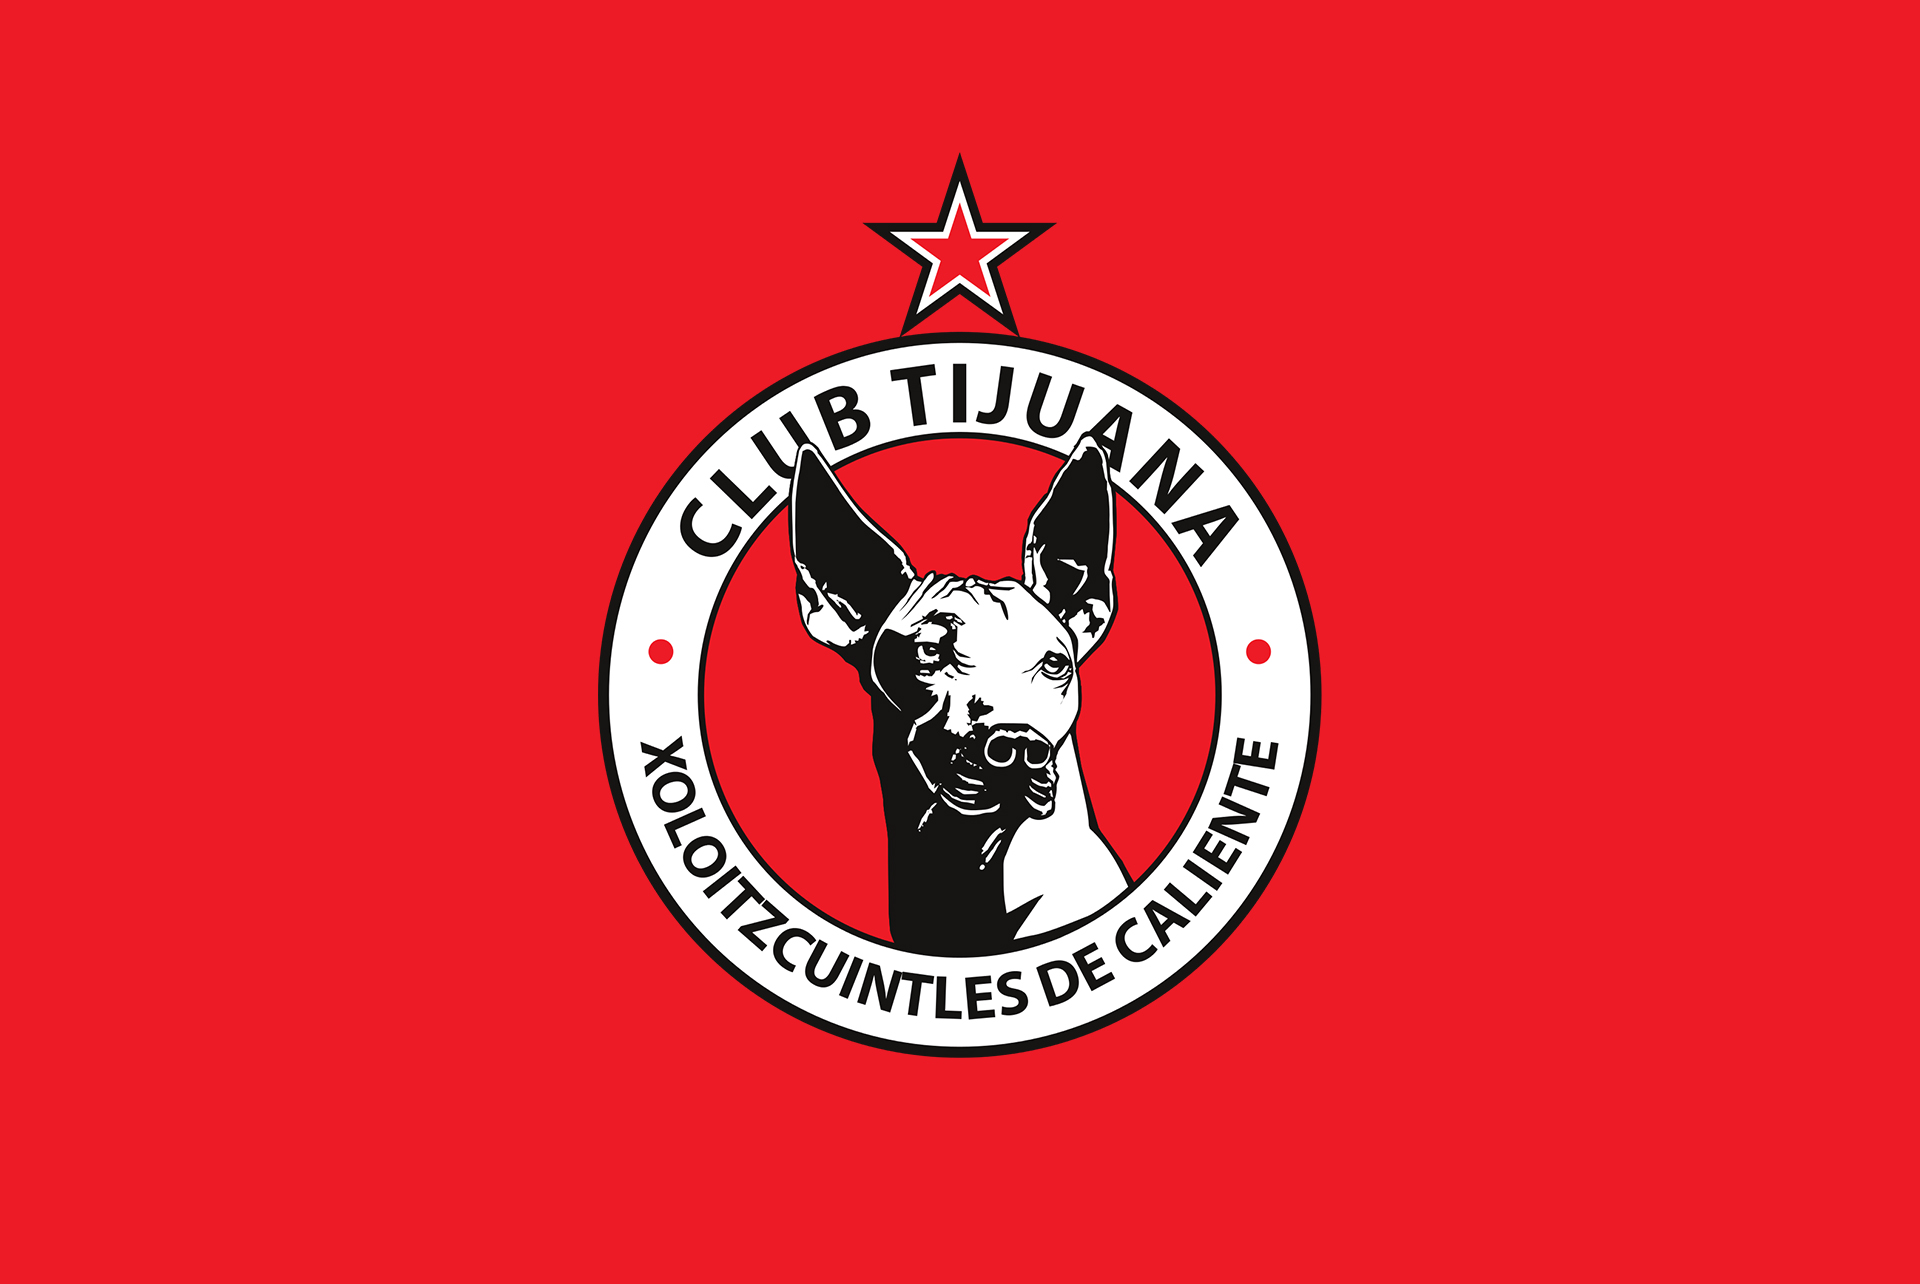 Best Football Logos Club TIjuana